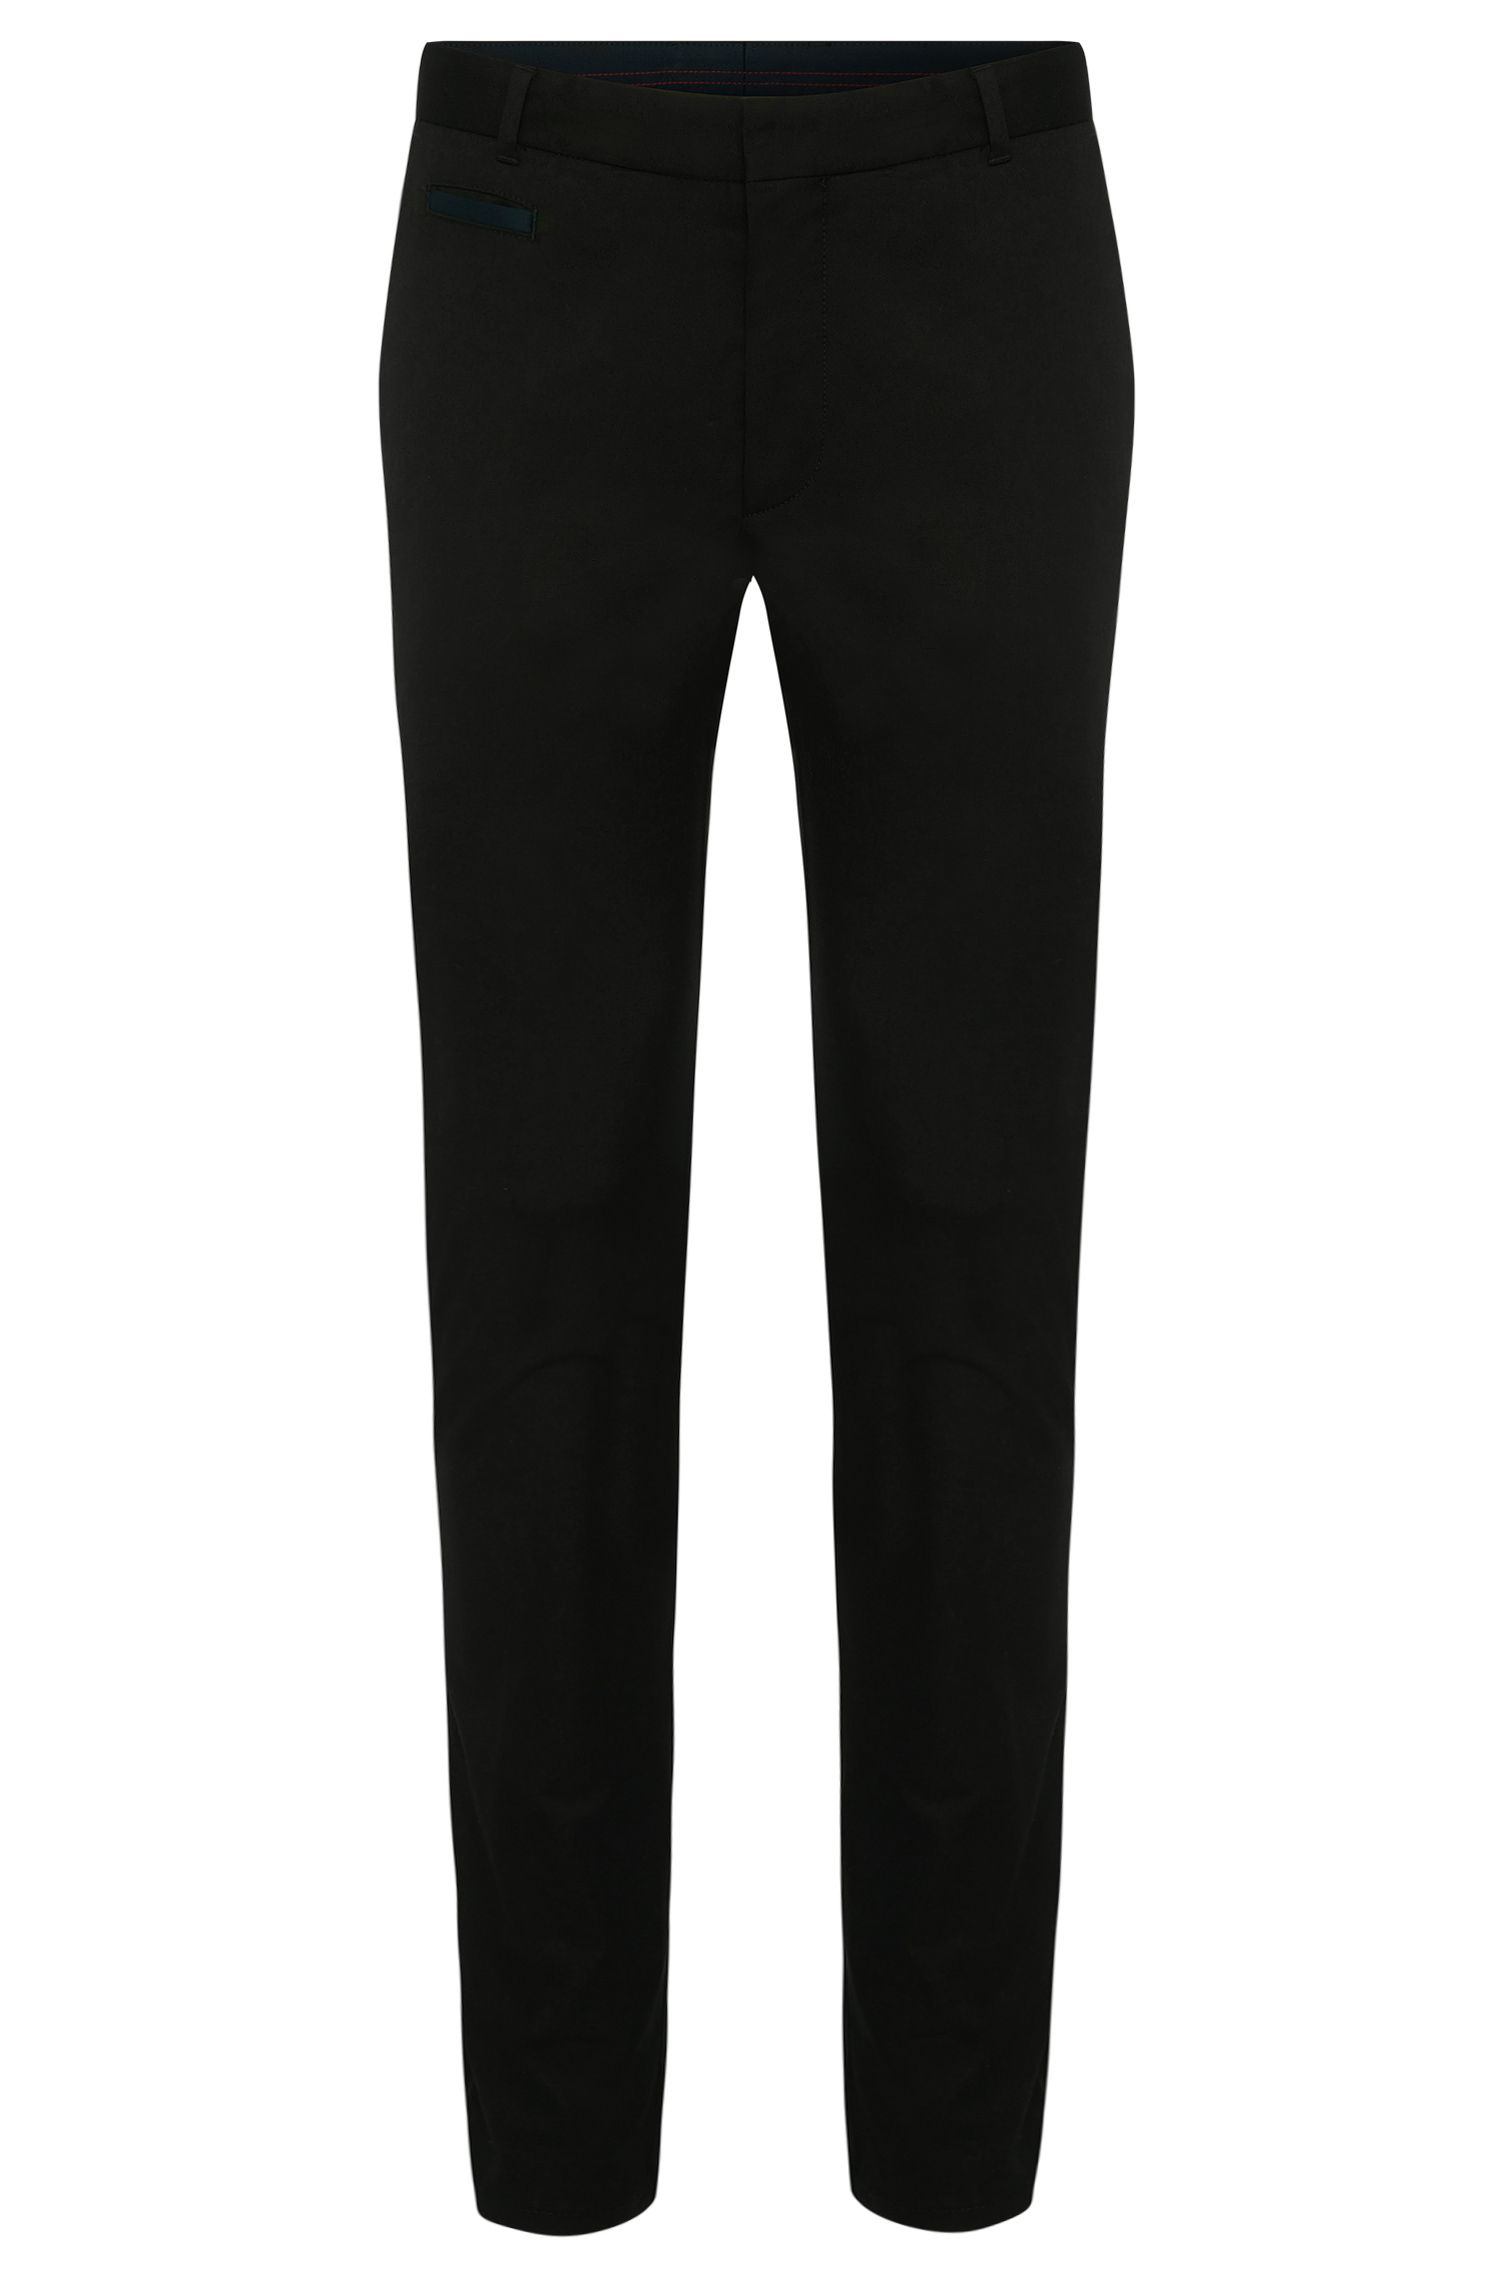 'Heralt' | Slim Fit, Stretch Cotton Trousers